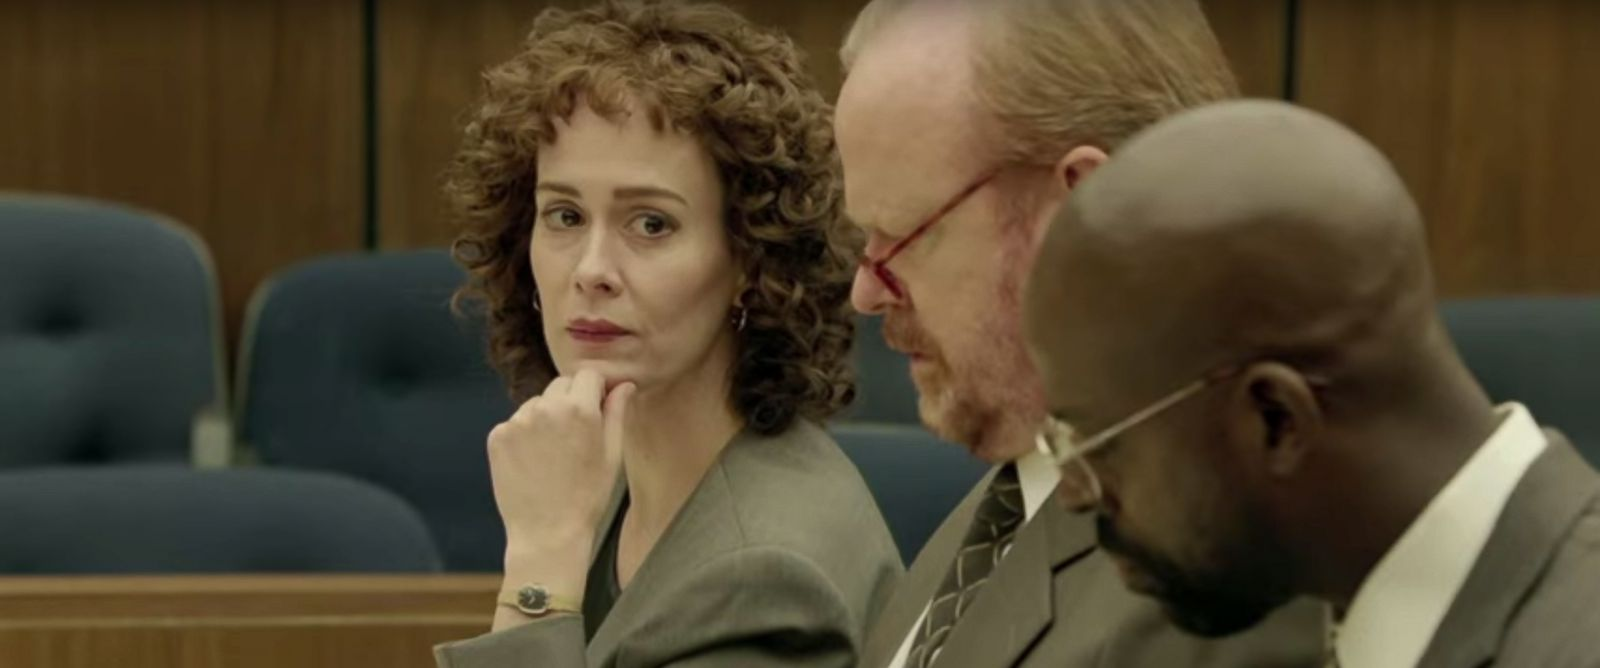 American Crime Story the people v oj simpson trailer hits 2015 images